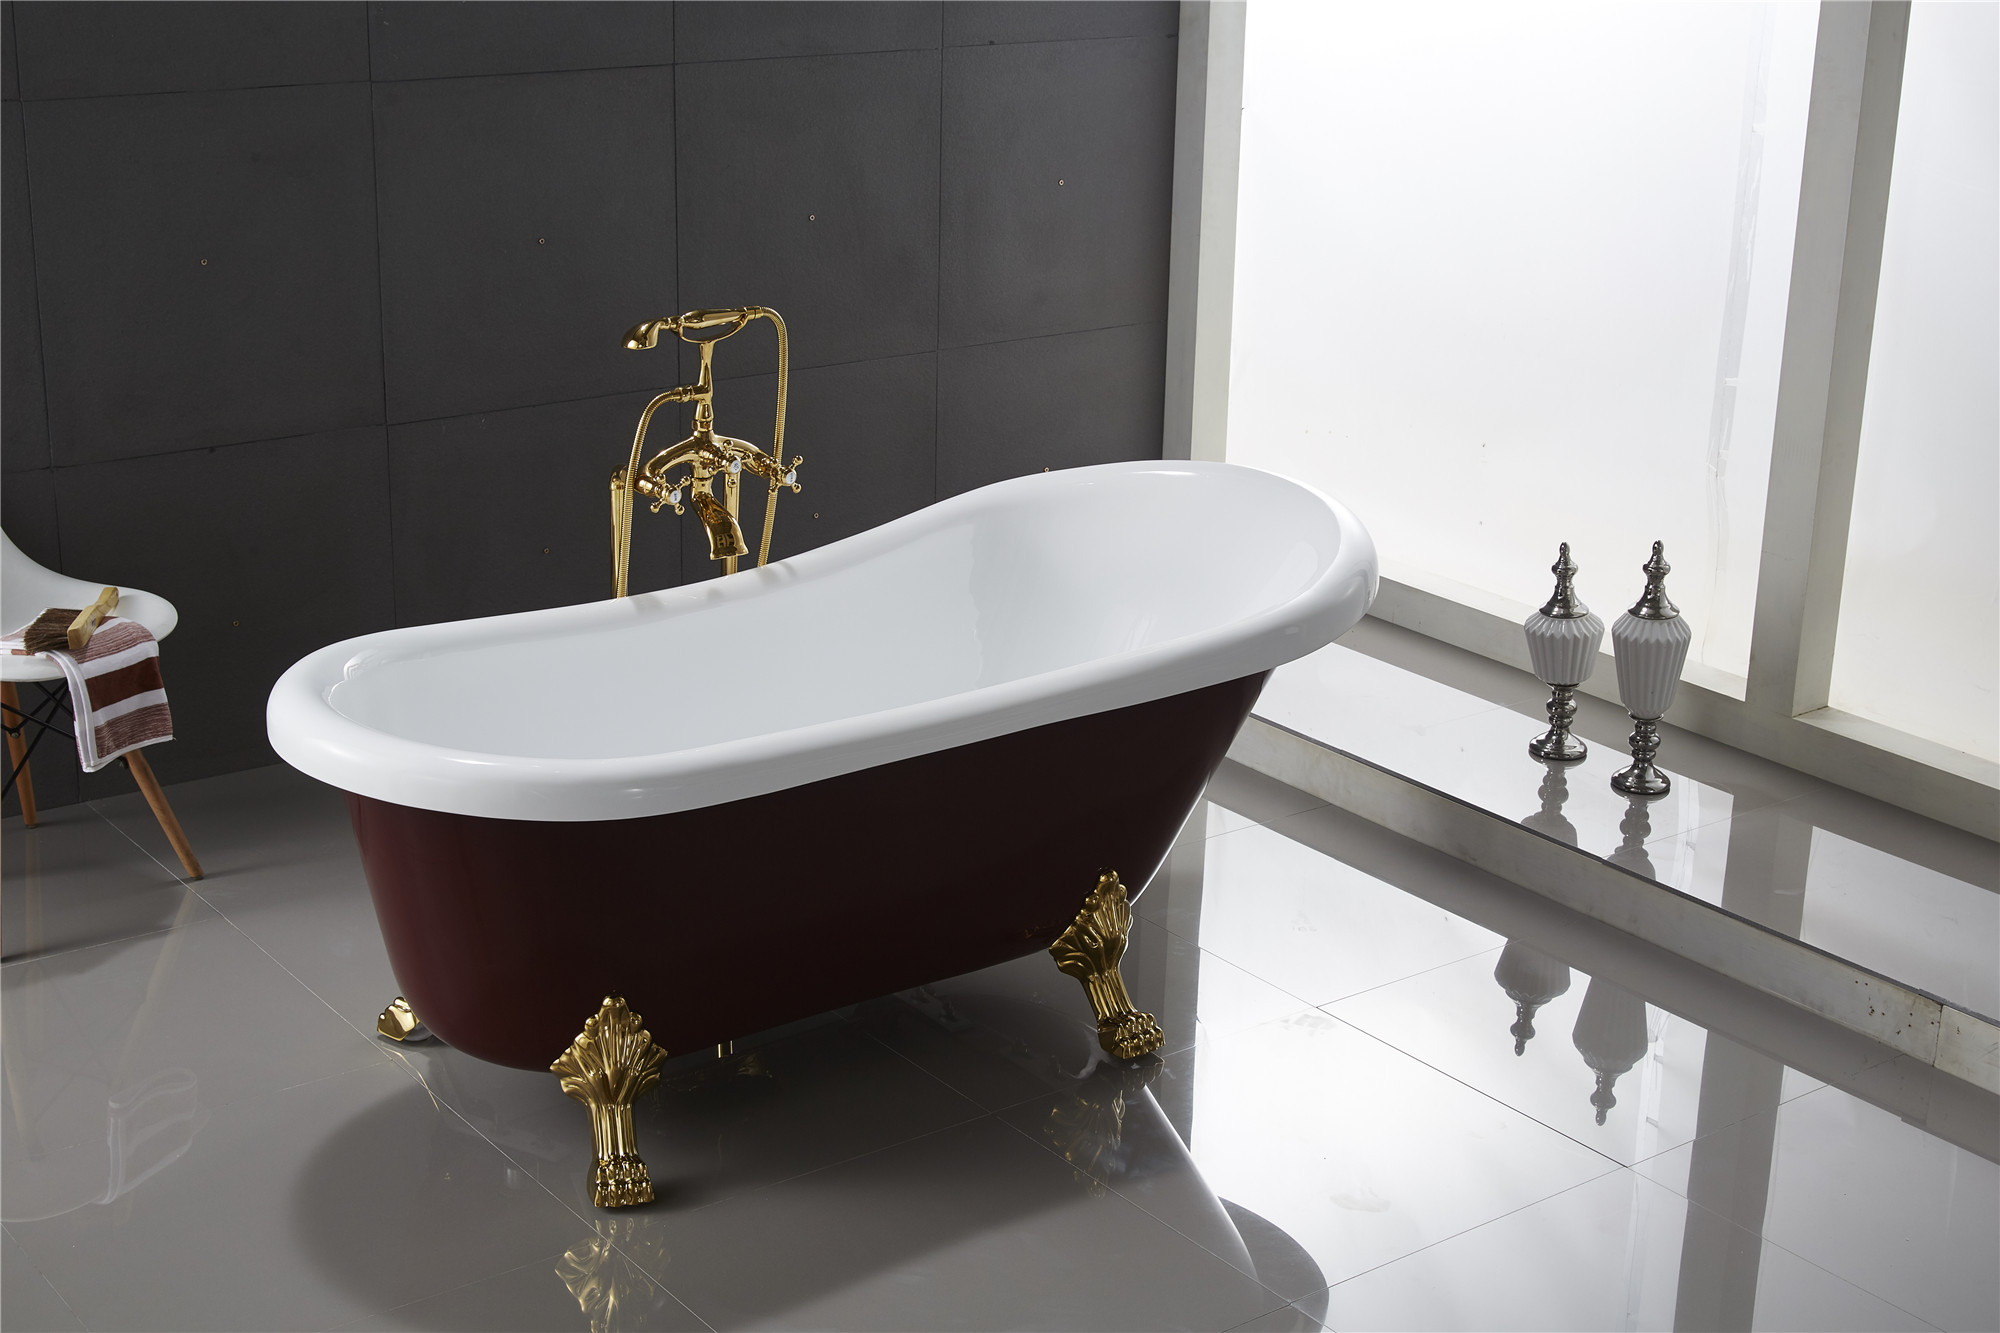 repair all inspiration faucets elegant about ideas bathroom h tub of design kitchen sink amazing elegantbathtub